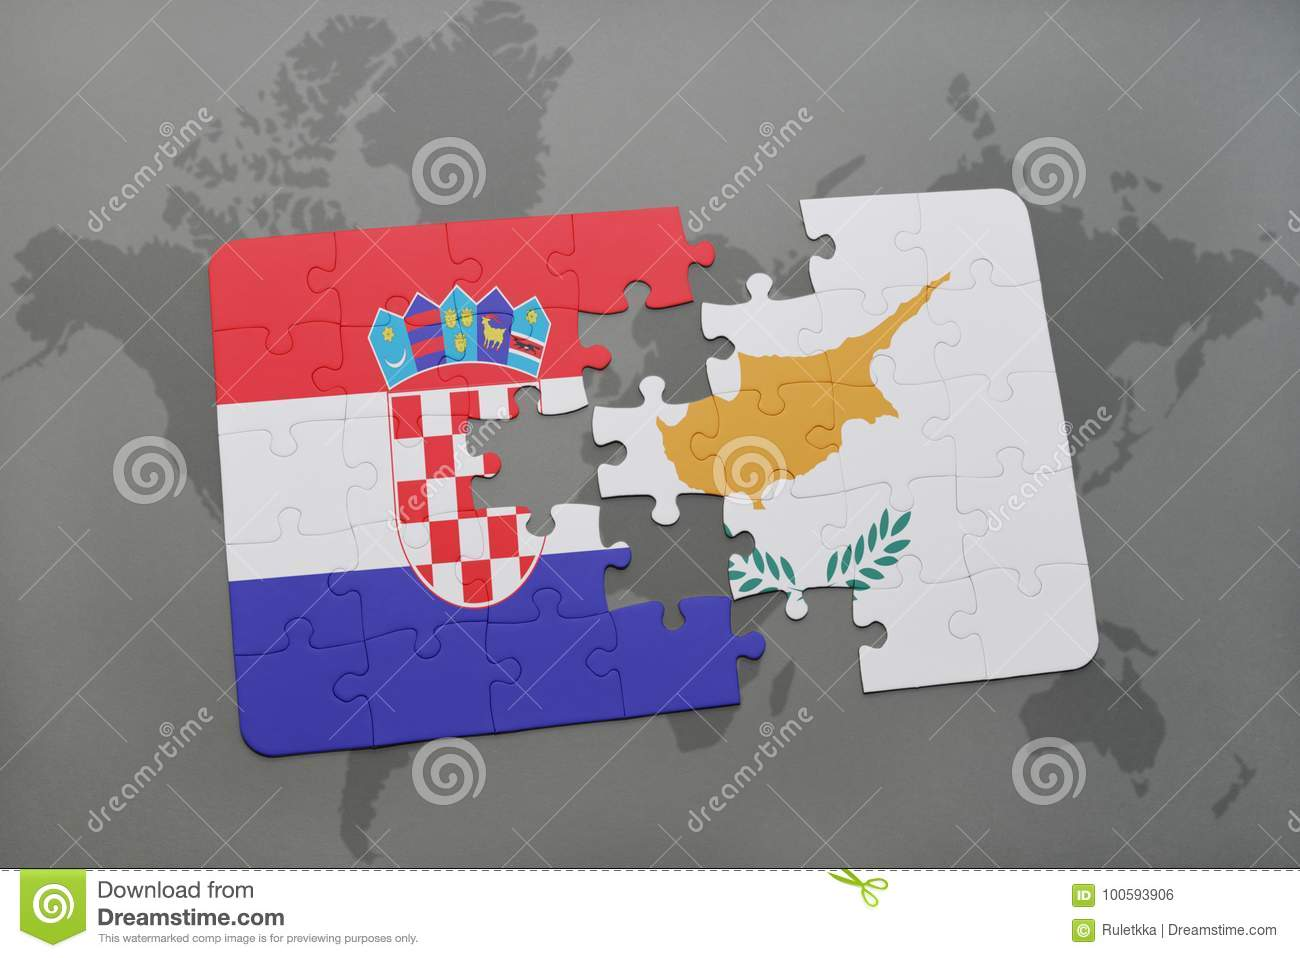 Puzzle with the national flag of croatia and cyprus on a world map download comp gumiabroncs Choice Image